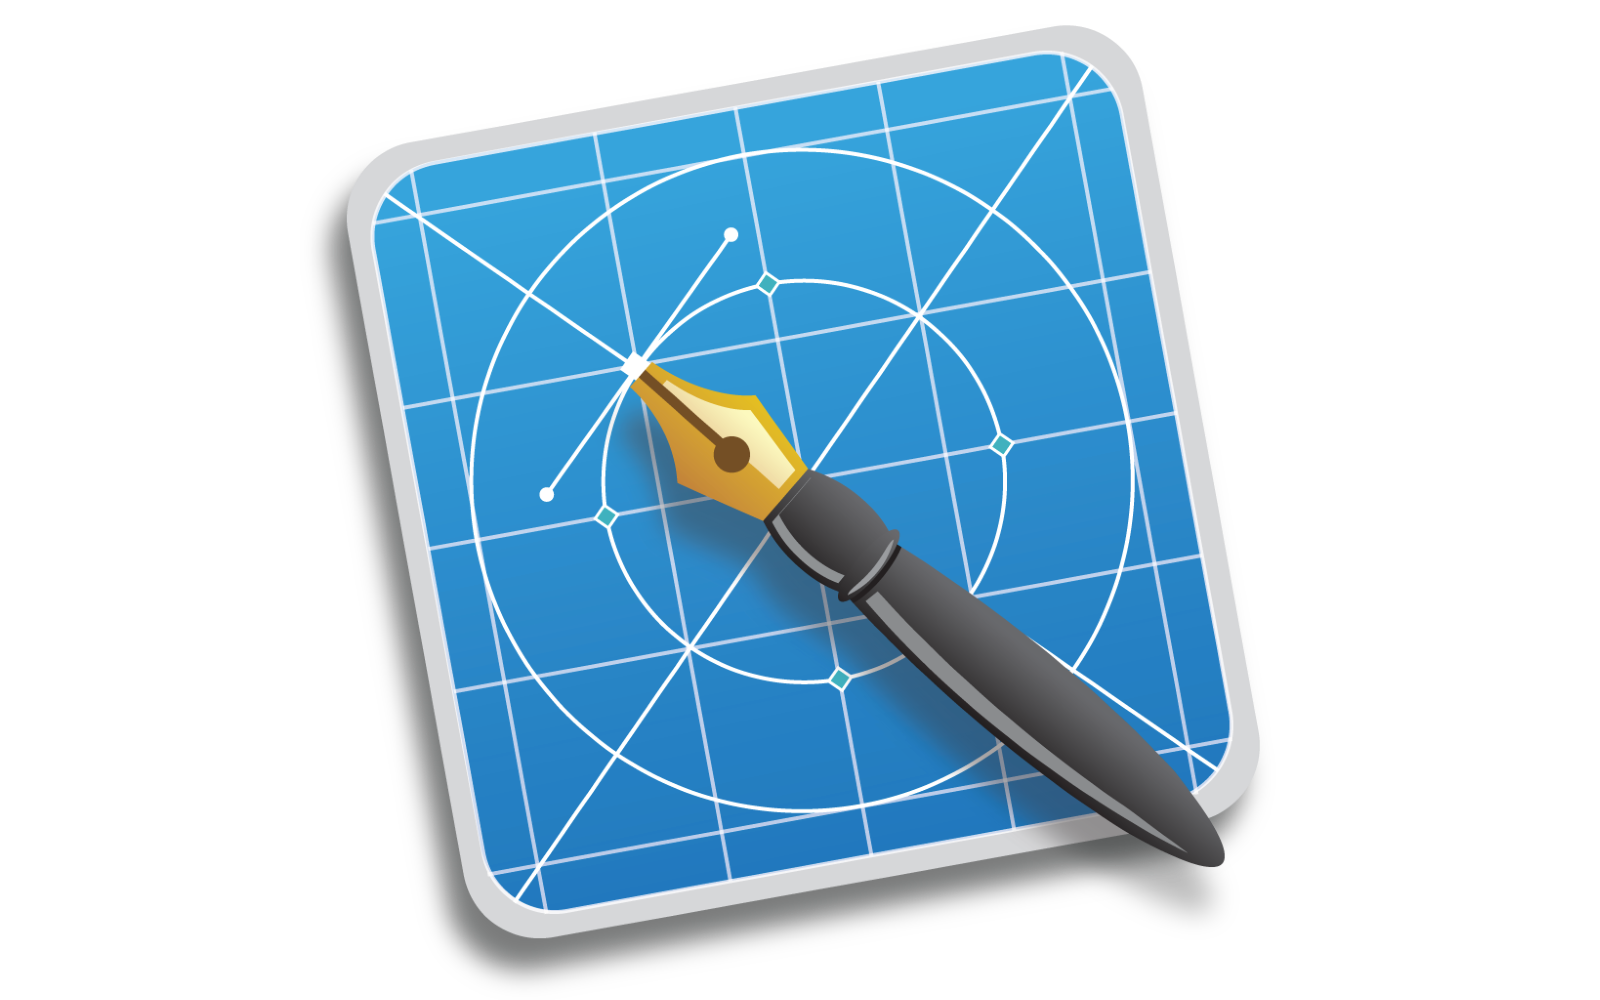 Create mac icon from png. How to make an